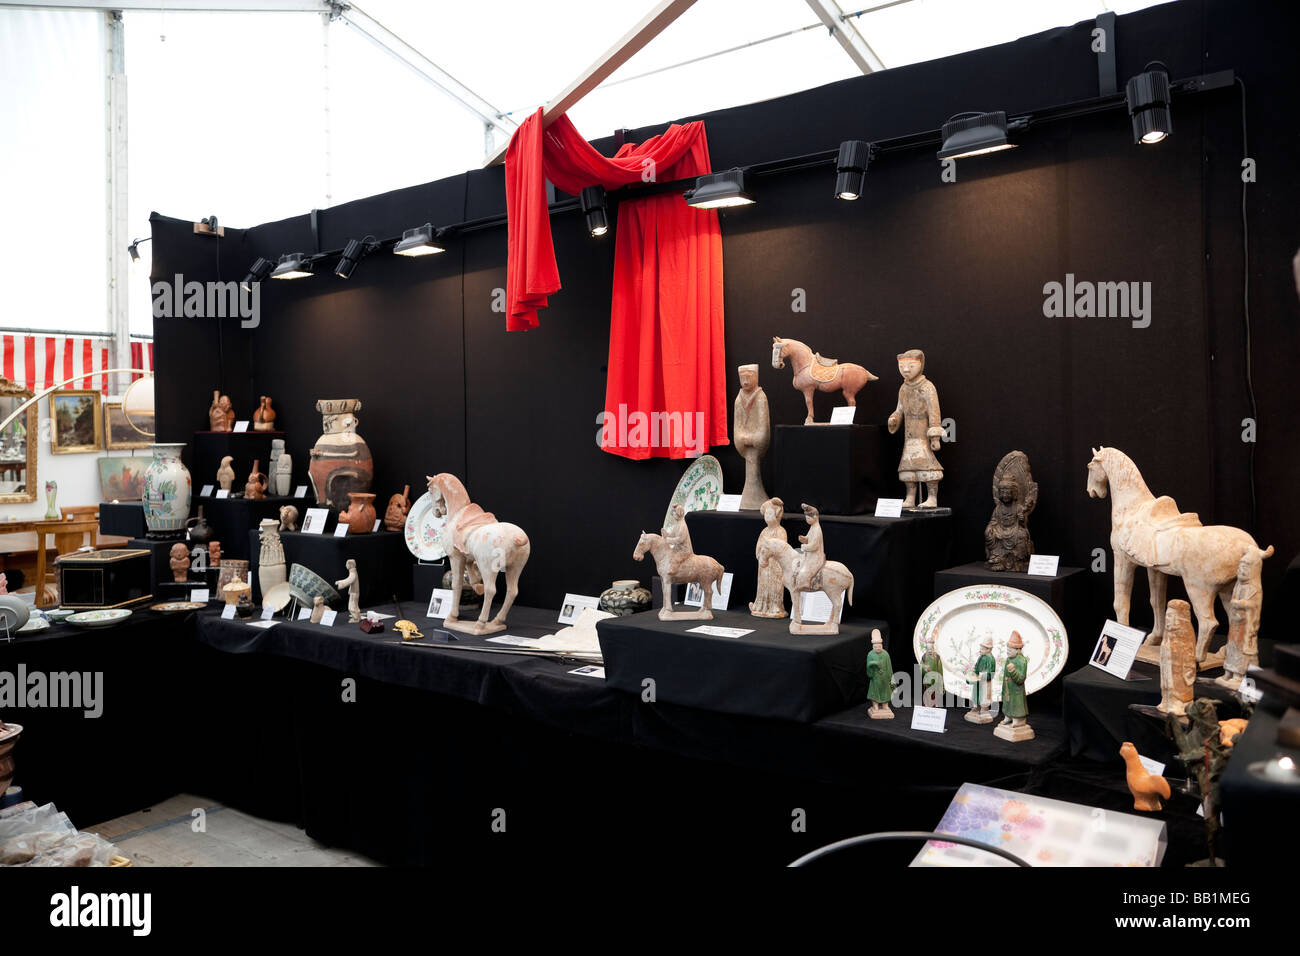 Booth specializing in Chinese and oriental antiques at the antique market Neuchatel Switzerland - Stock Image